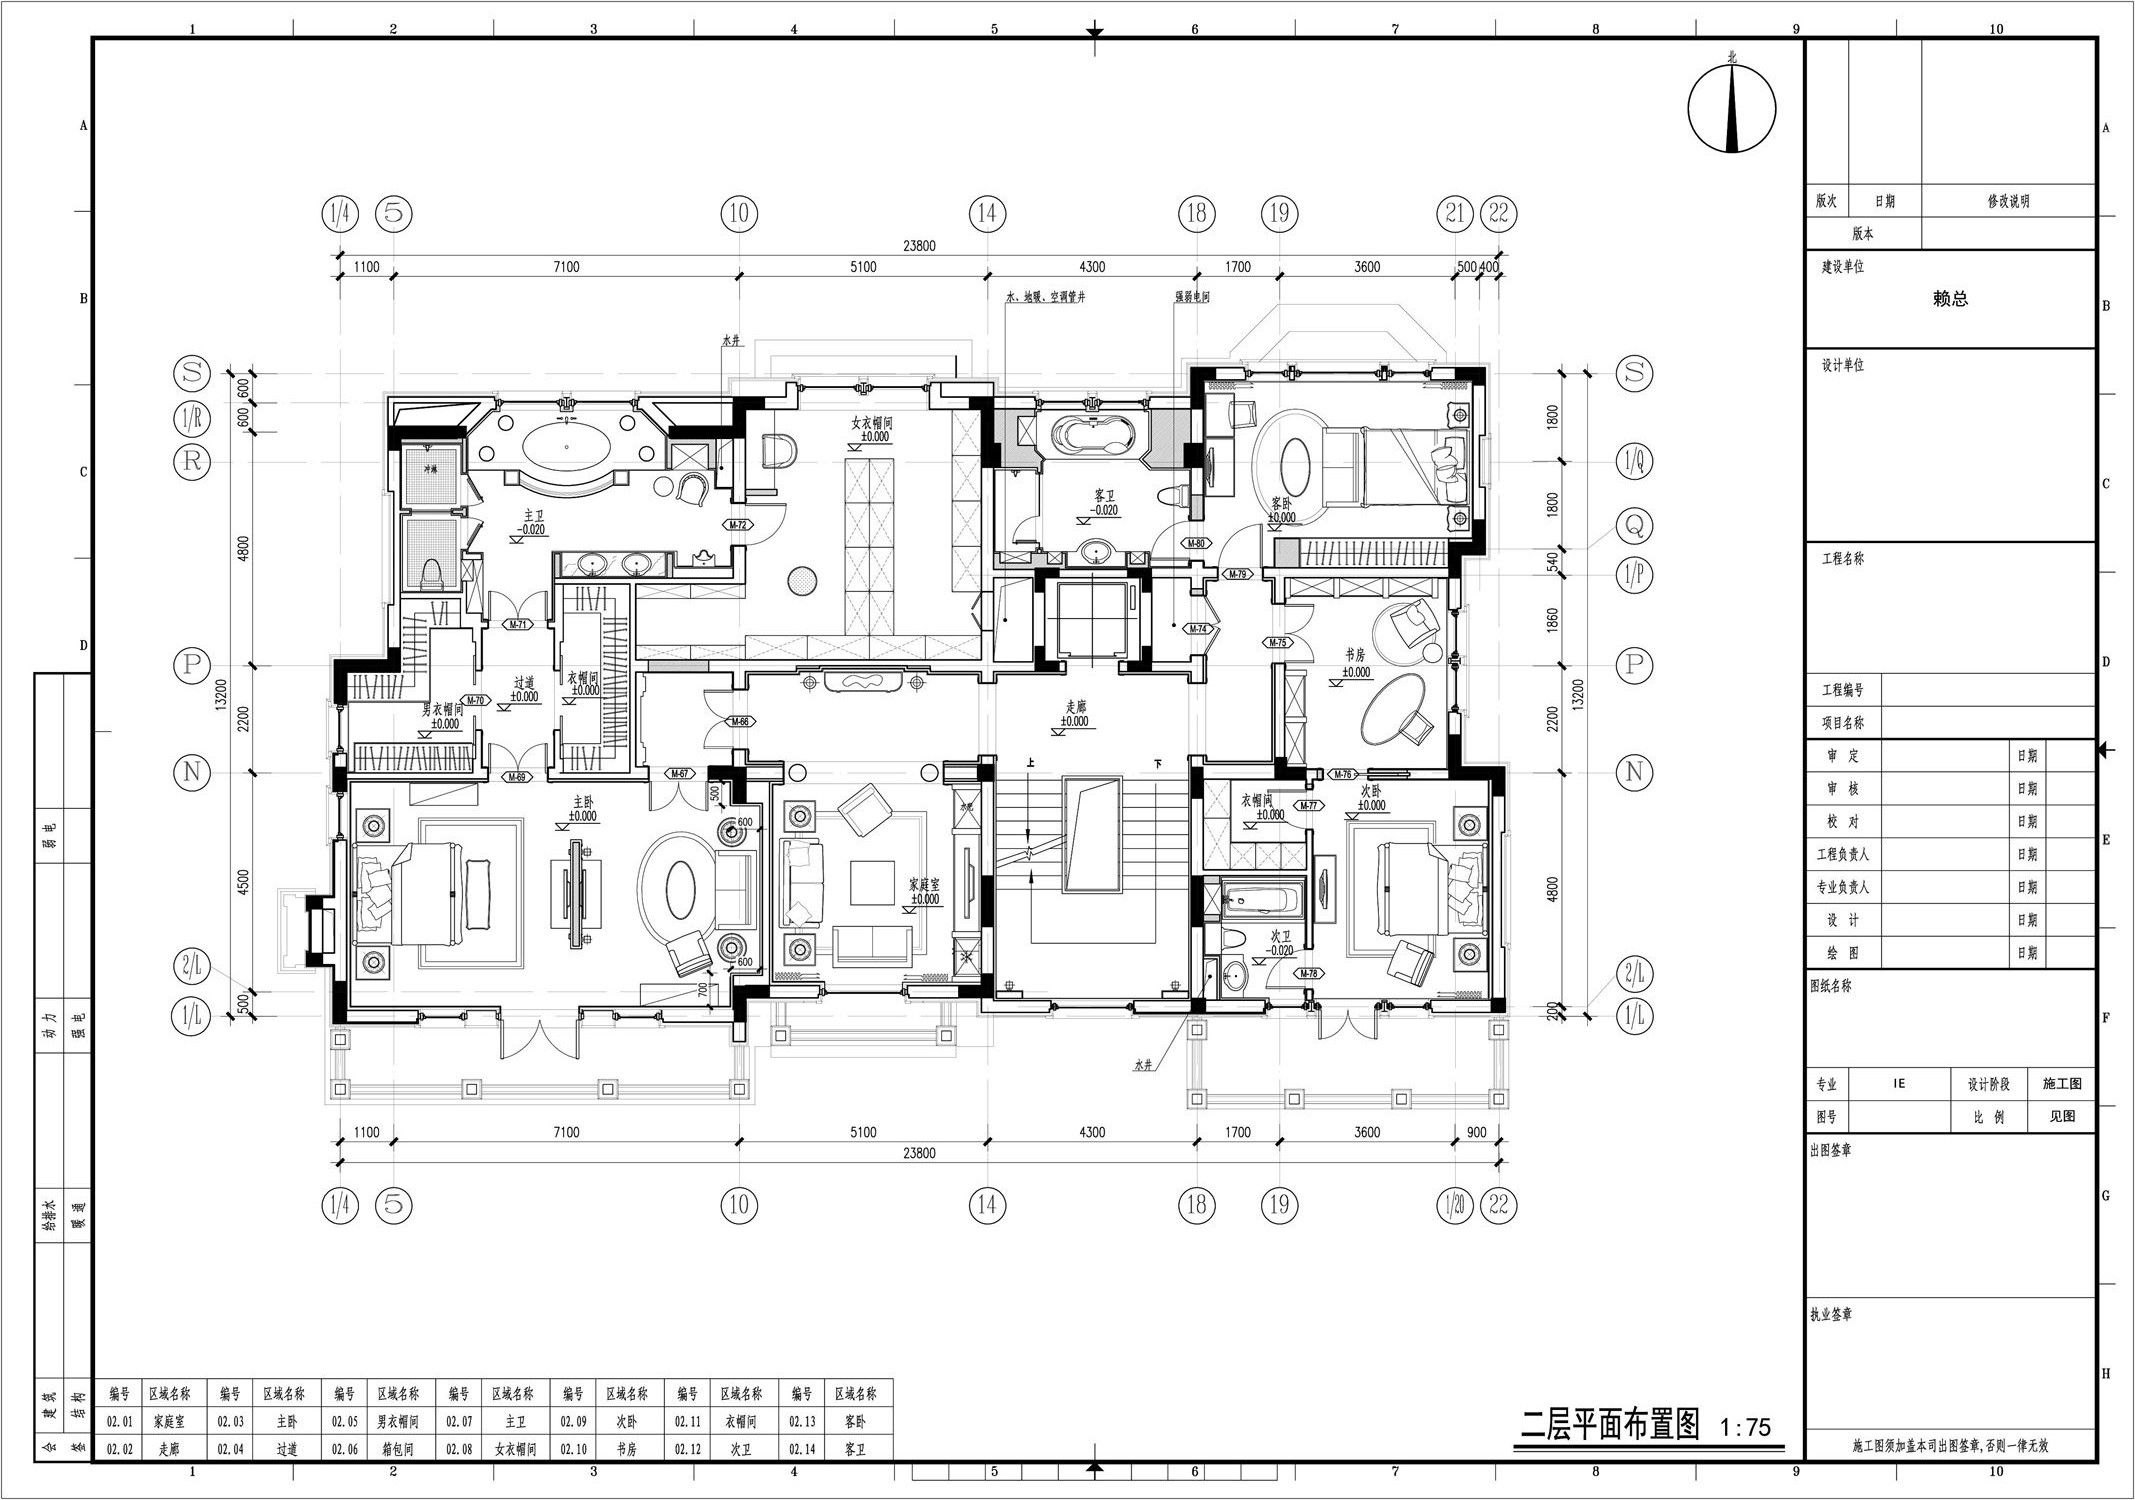 Pin On Interior Design Details Interior Design Autocad Drawings